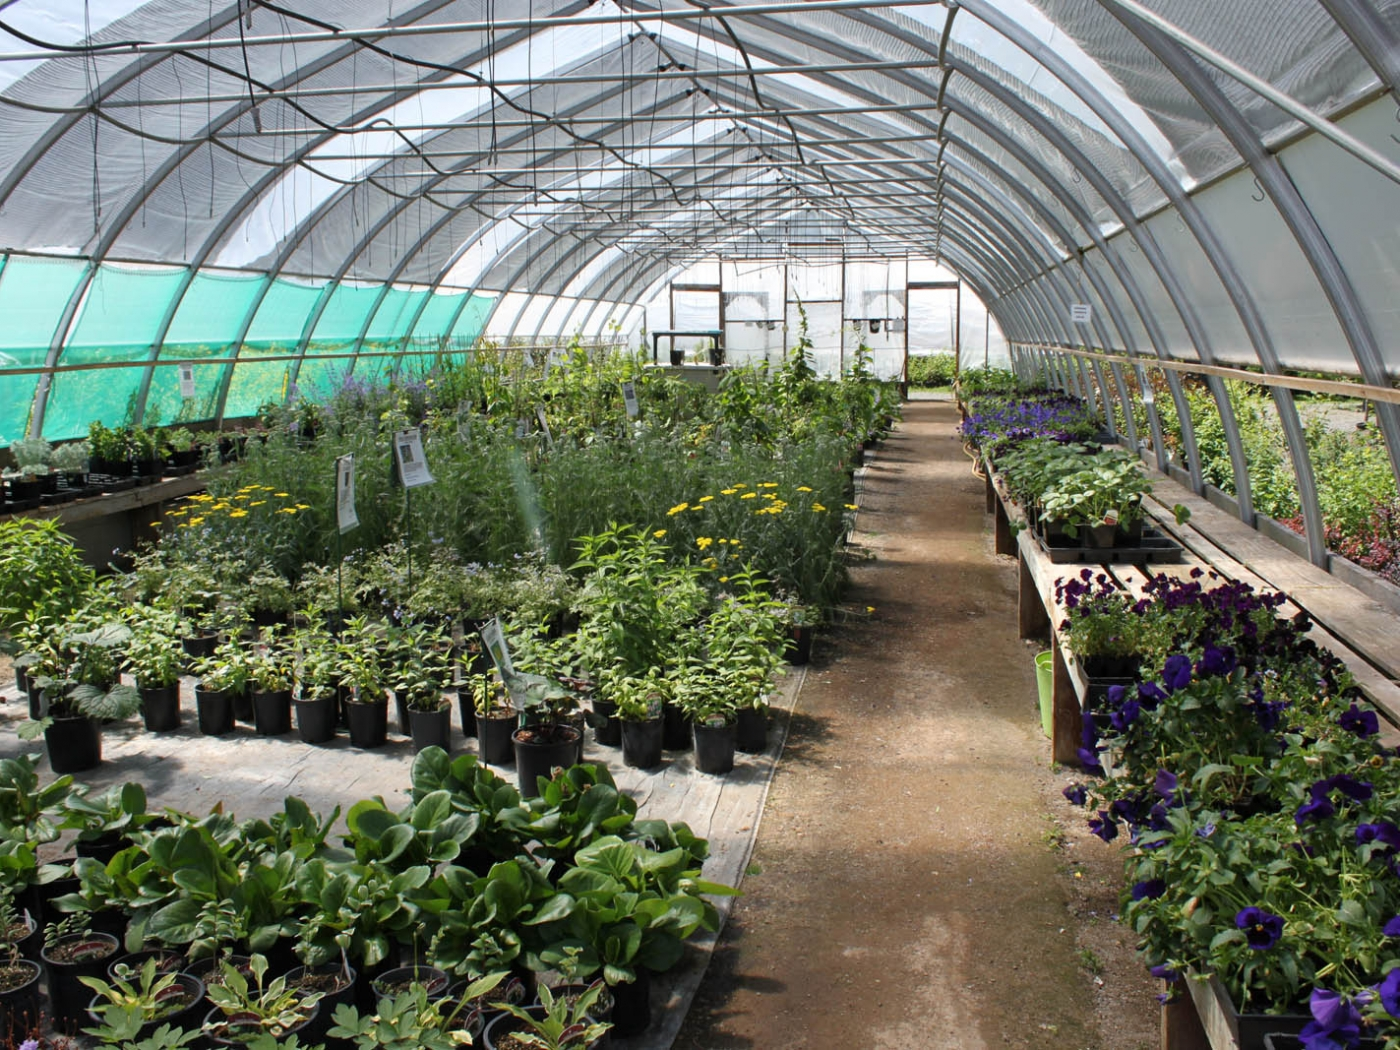 2019 APPRAISED AT OVER $1,210,000. In operation since 20 IO and is the largest greenhouse operation in the Cariboo is a business for sale in BC.